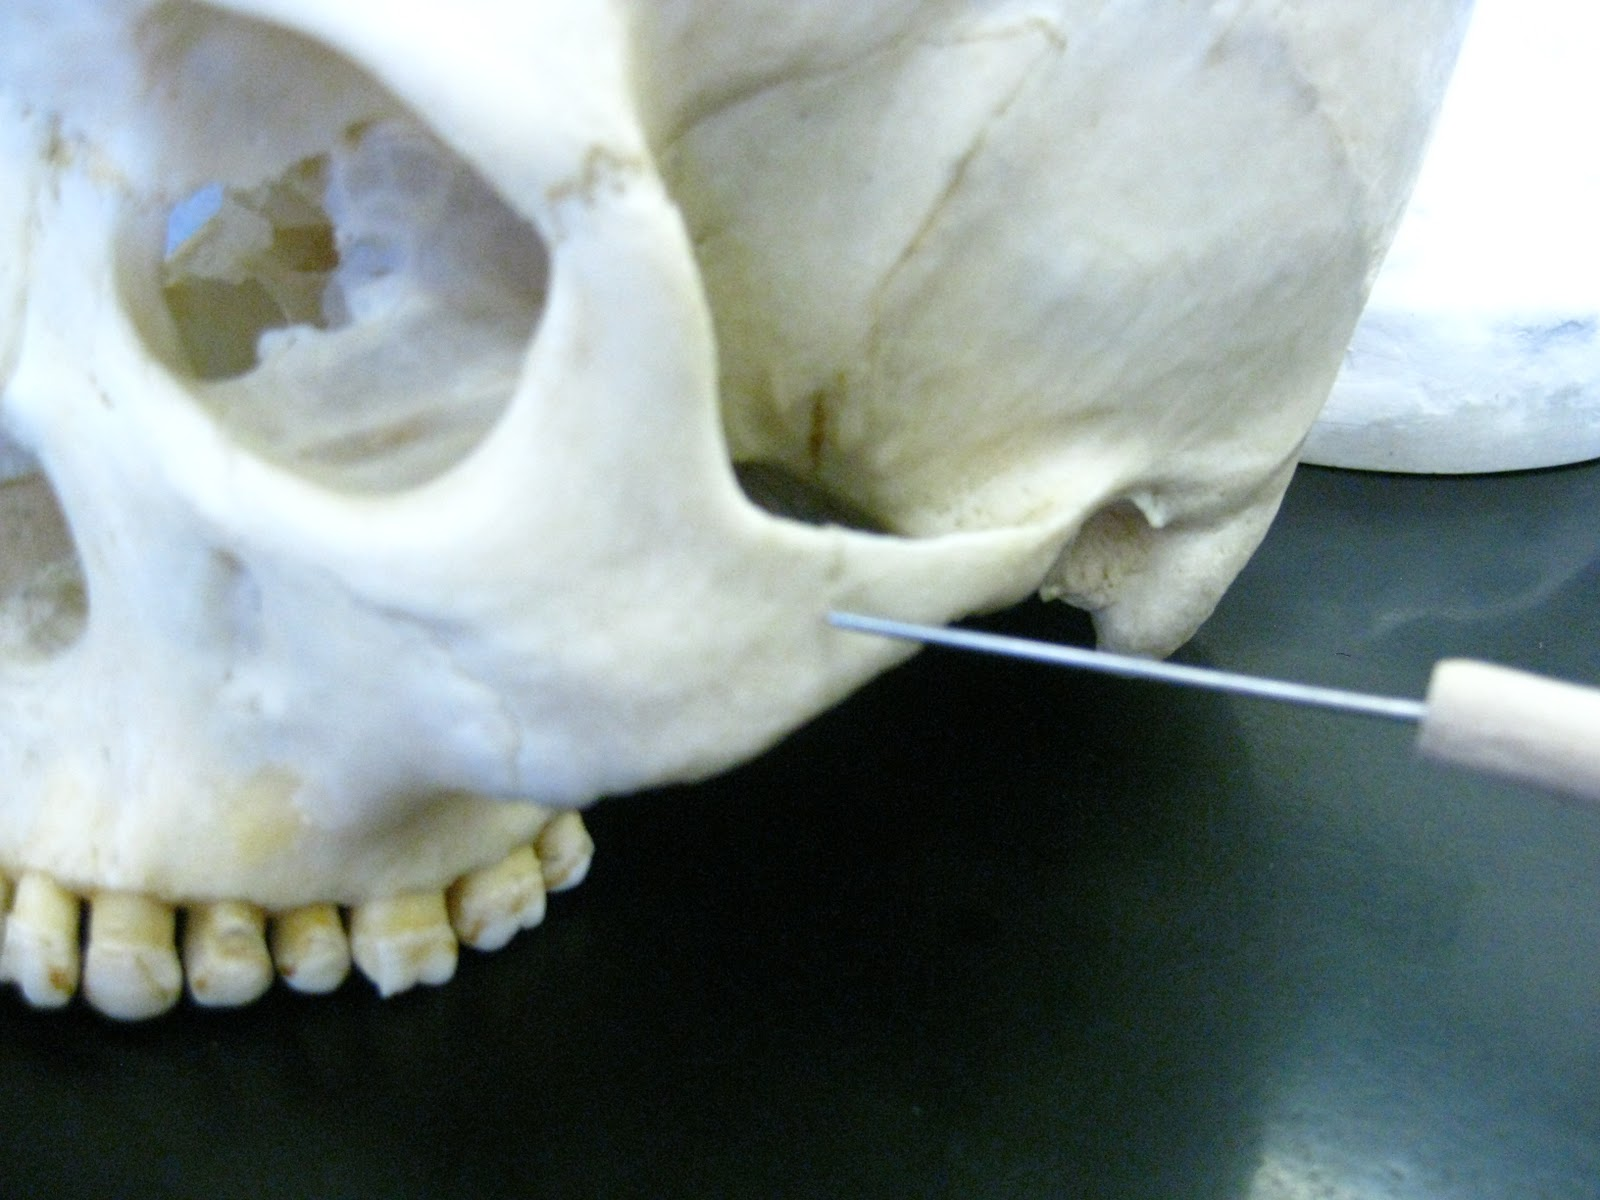 Boned Human Skull Temporal Process Of Zygomatic Bone